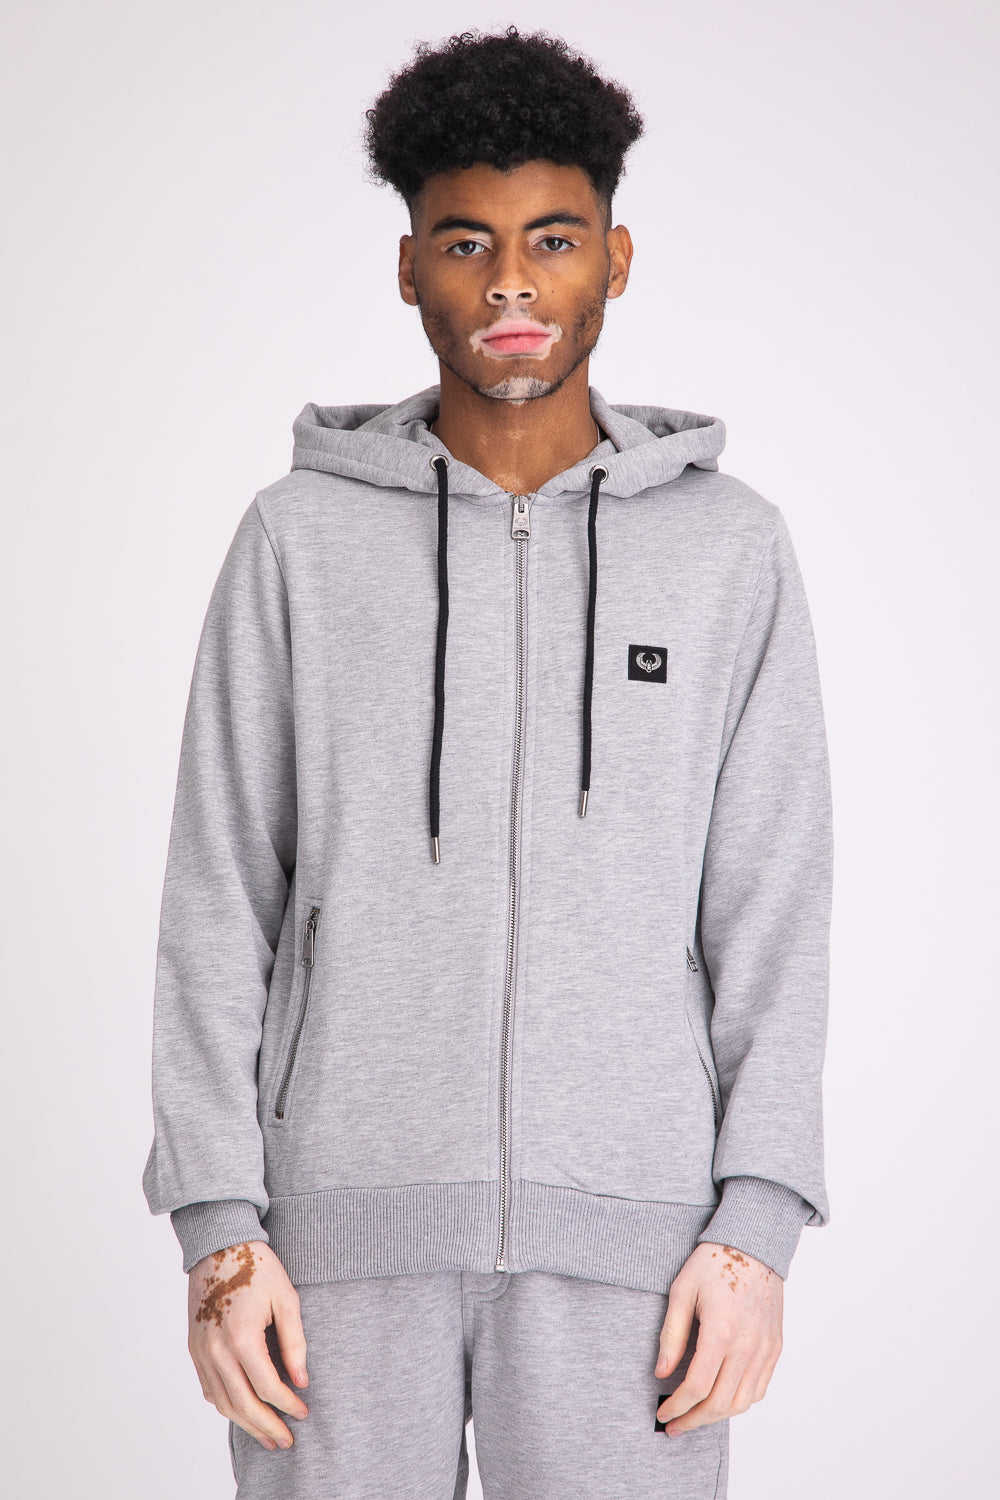 Style: Camden Basic Grey Hoody - Junq Couture